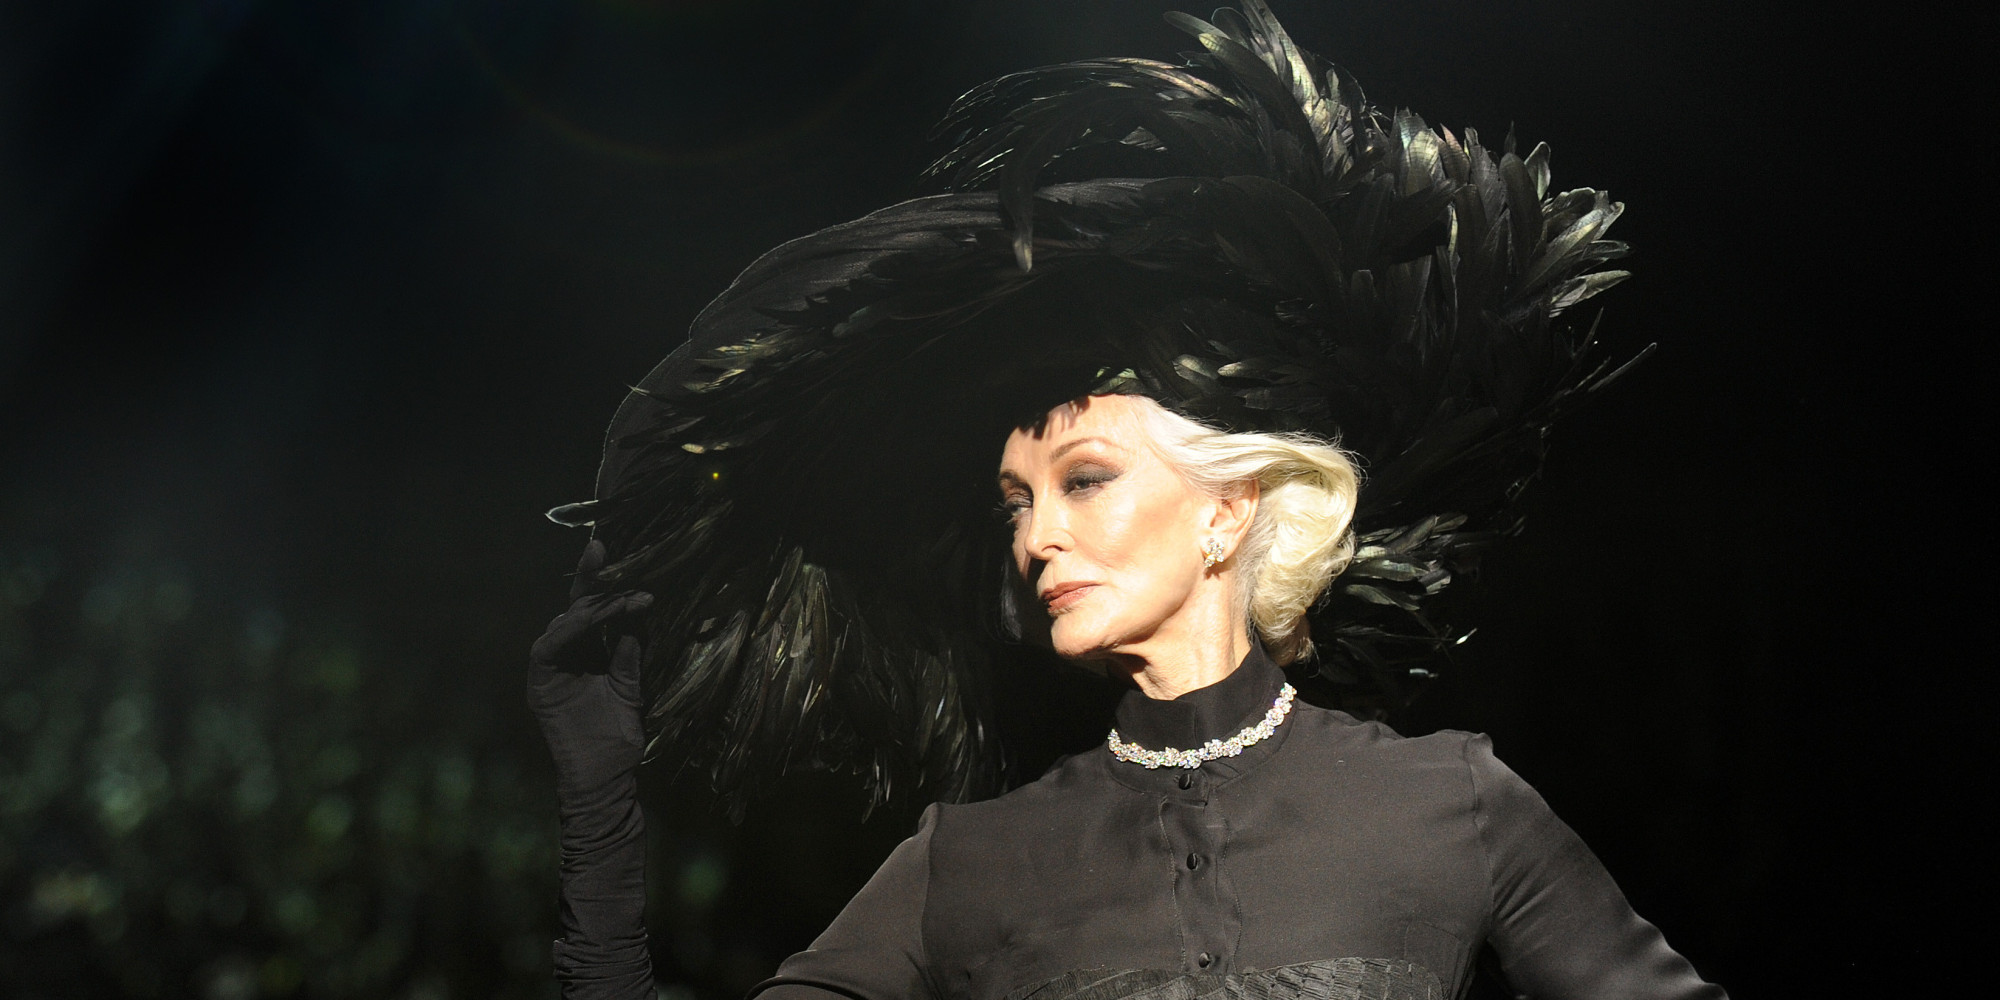 LONDON - FEBRUARY 21: Carmen Dell'Orifice walks the catwalk during the Qasimi show during a/w 2009 London Fashion Week at St Mary's Church on February 22, 2009 in London, England. (Photo by Samir Hussein/Getty Images)